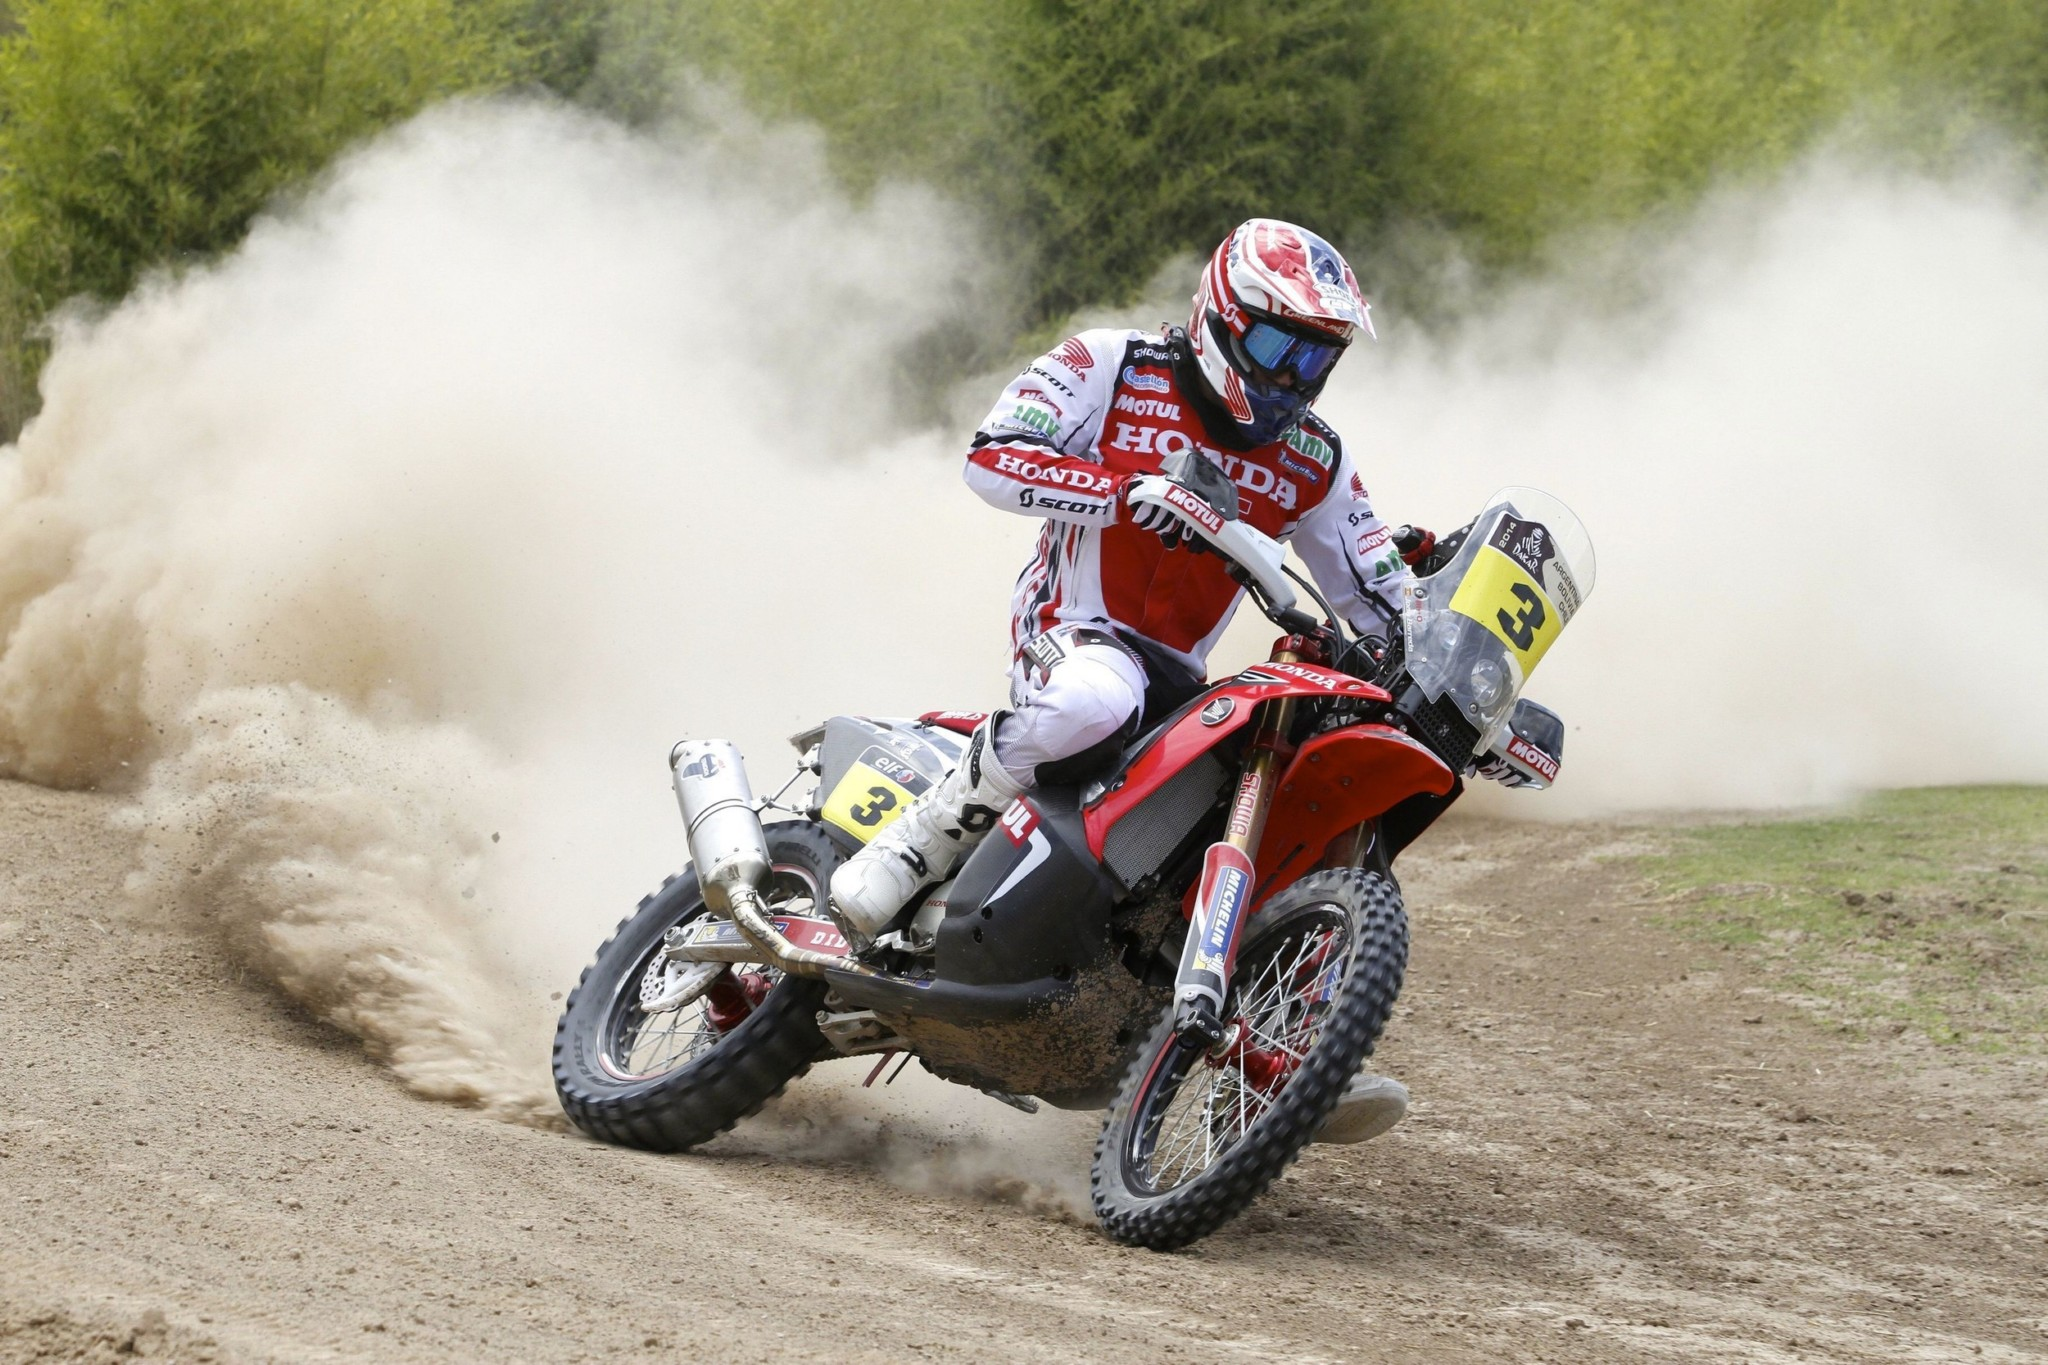 2014 dakar joan barreda bort and honda claim stage 1 photo galleryvideo 8